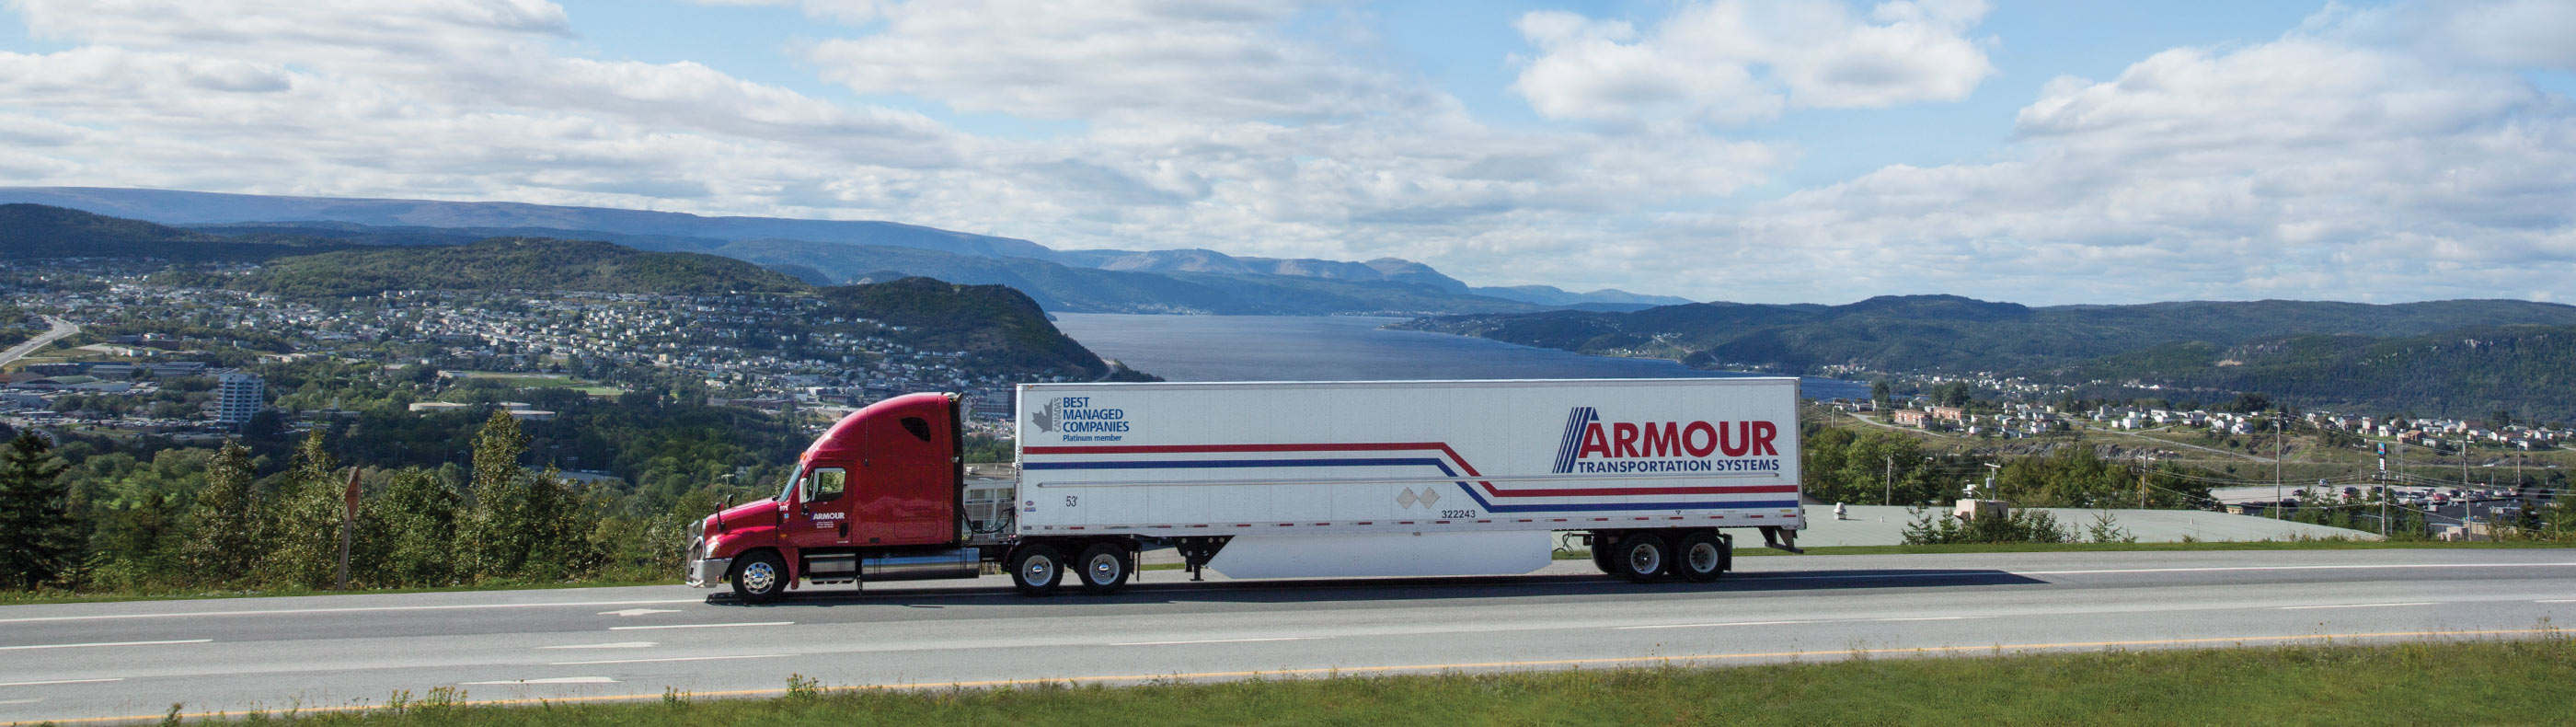 Armour Transportation transport truck